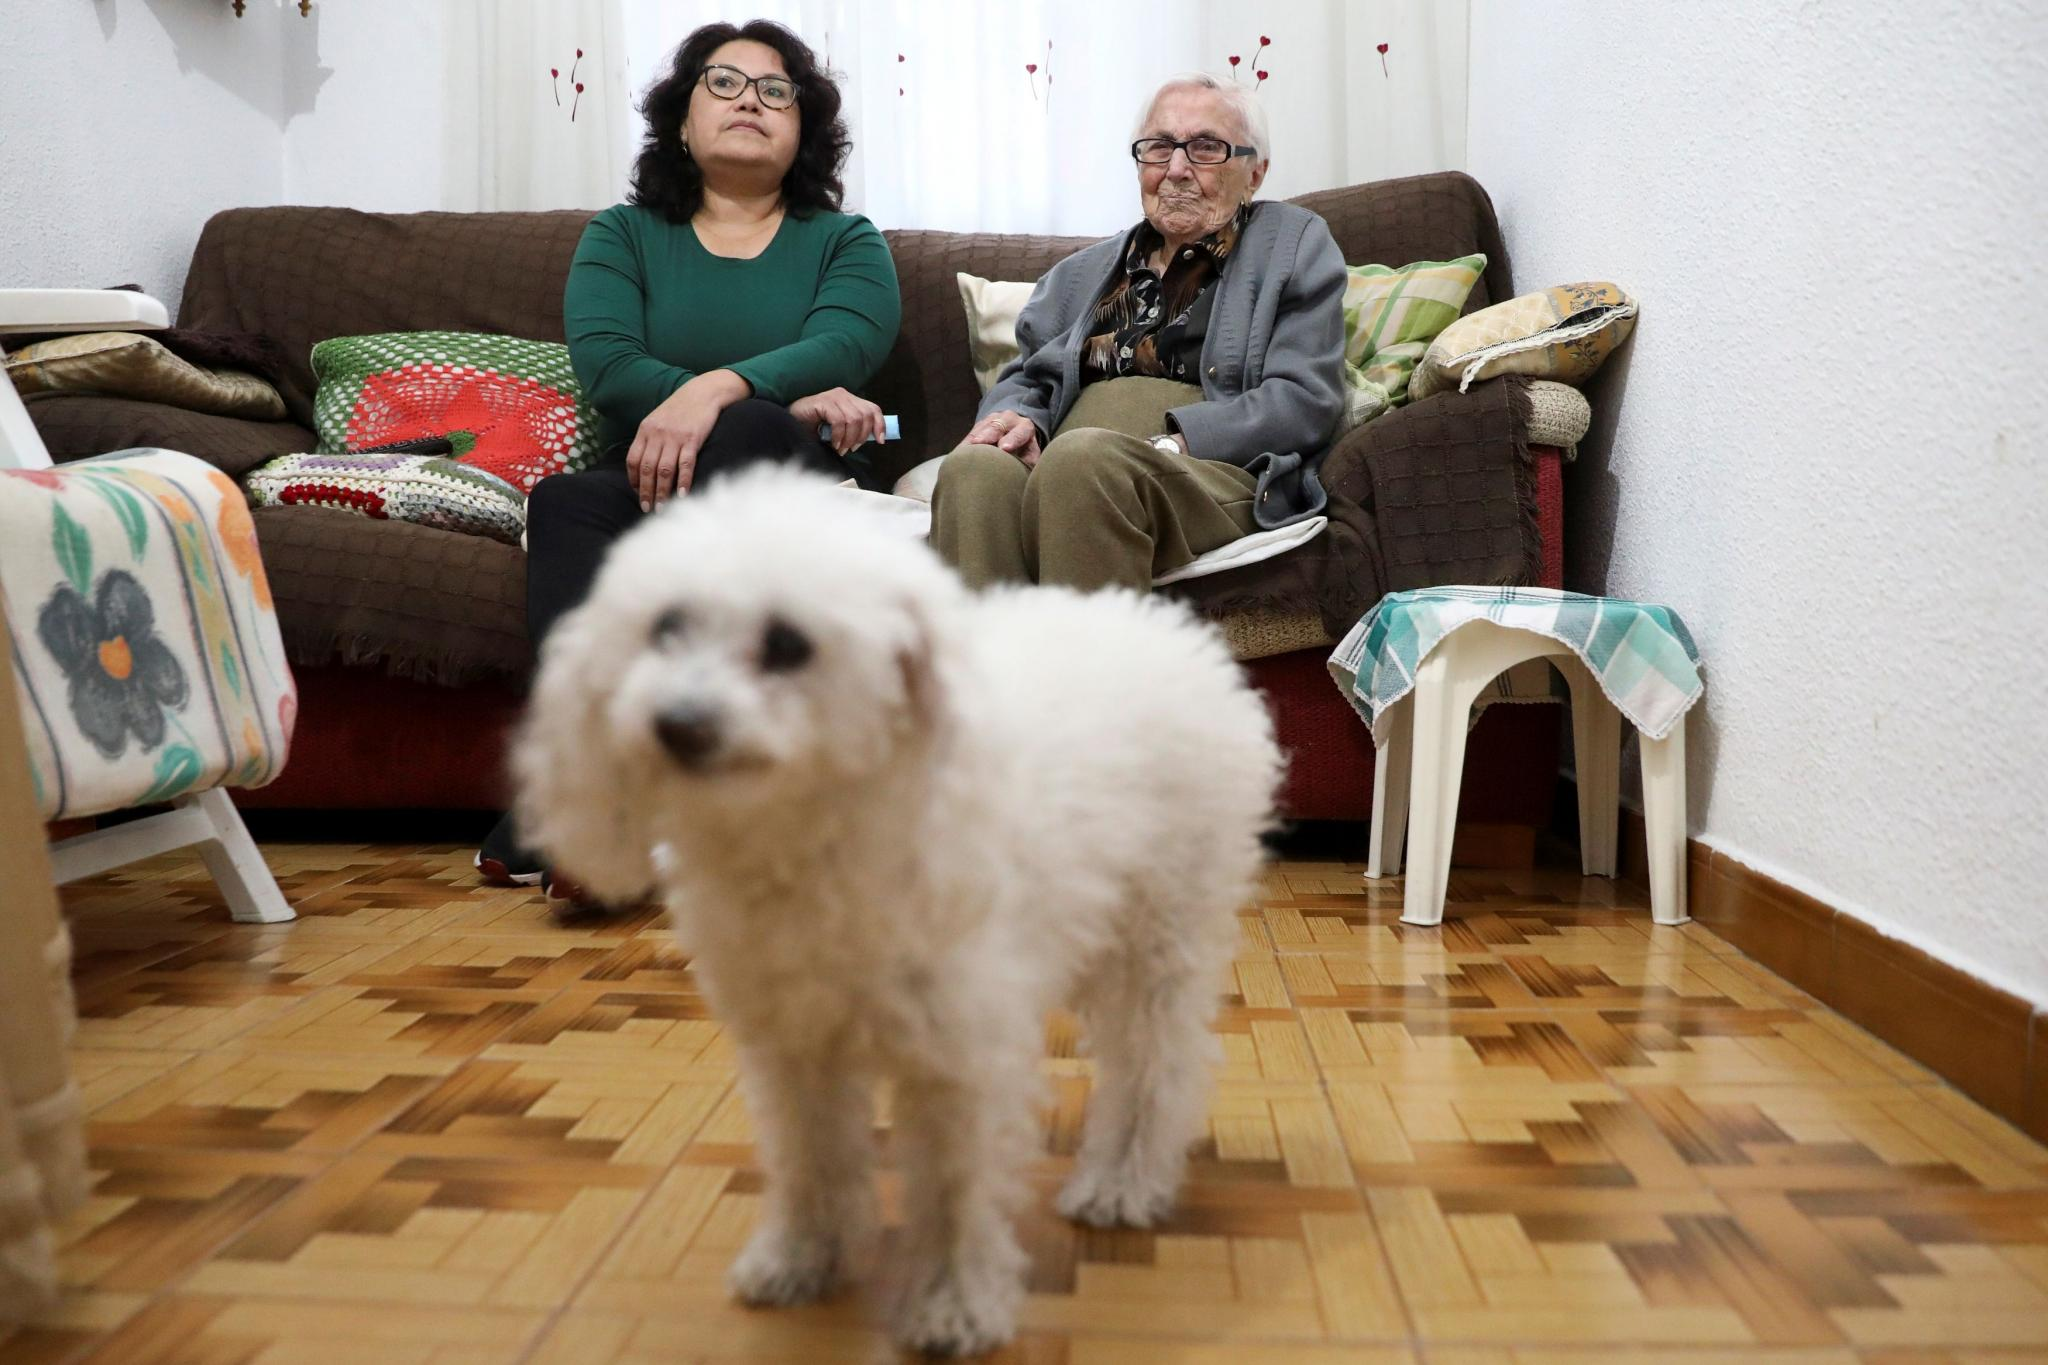 Florentina Martin, a 99 year-old woman who survived coronavirus disease (COVID-19), sits on a sofa with her caregiver Olga Arauz as they watch TV at her home in Pinto